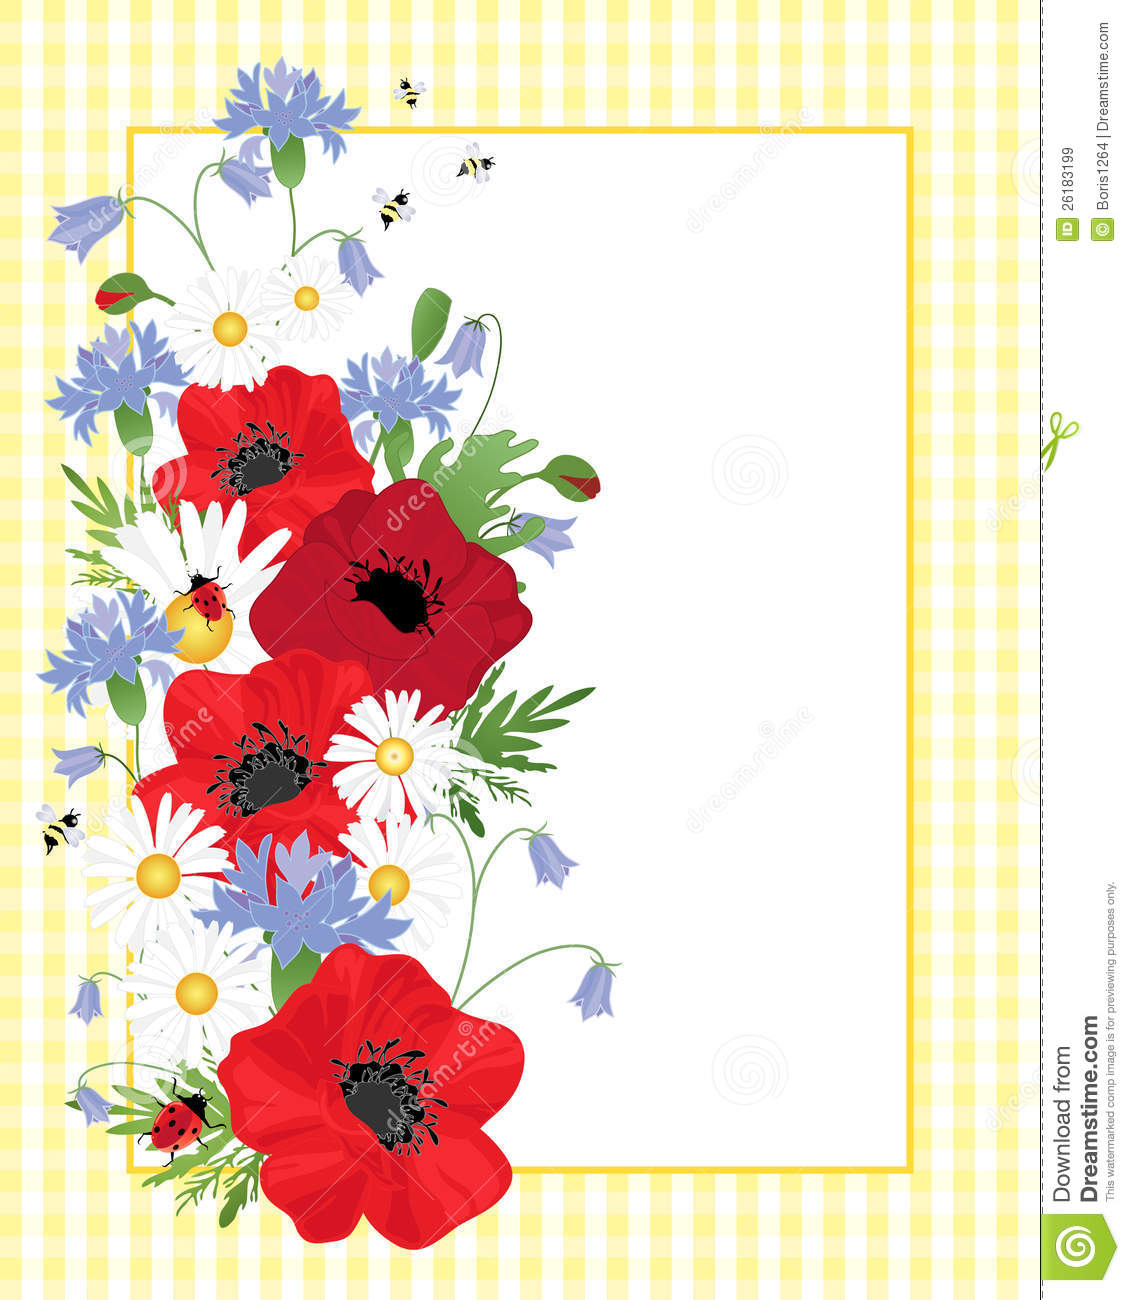 Wildflower clipart royalty free Wildflower collection Border border art